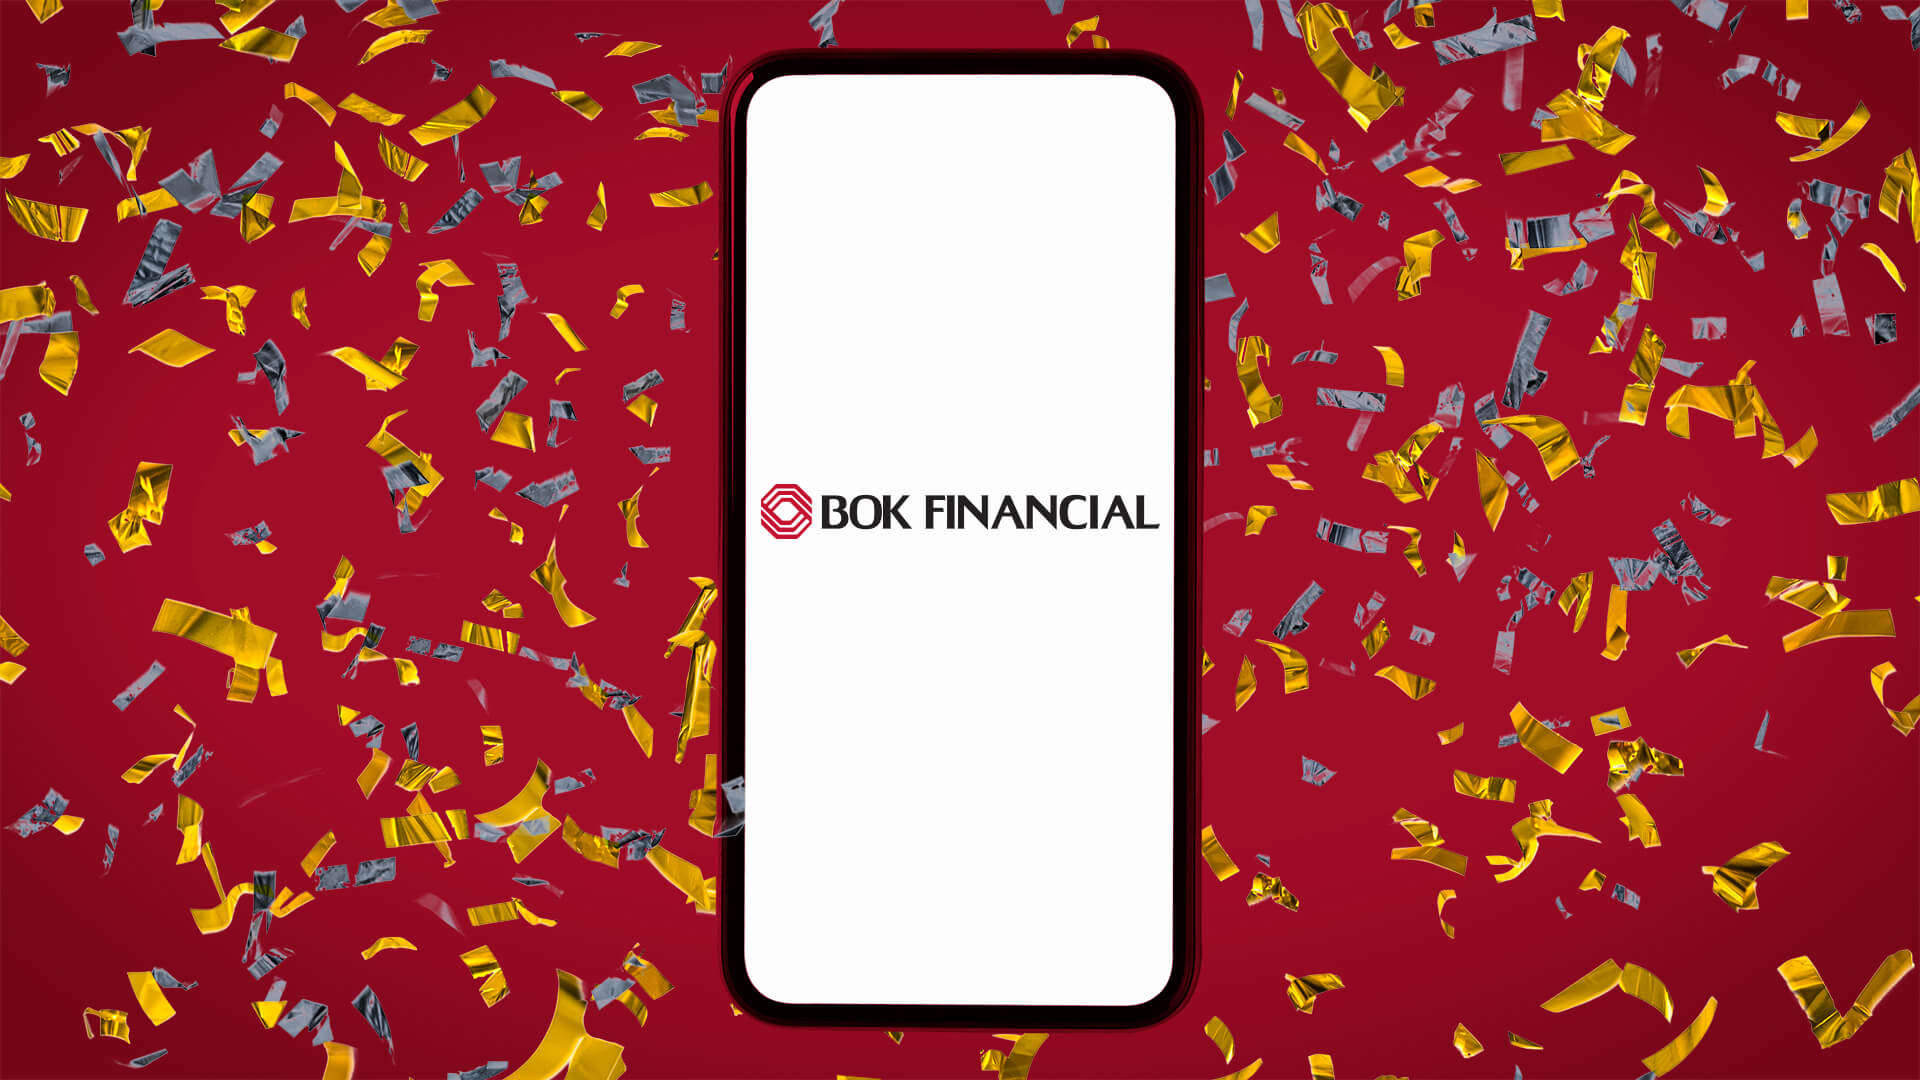 BOK Financial bank promotions